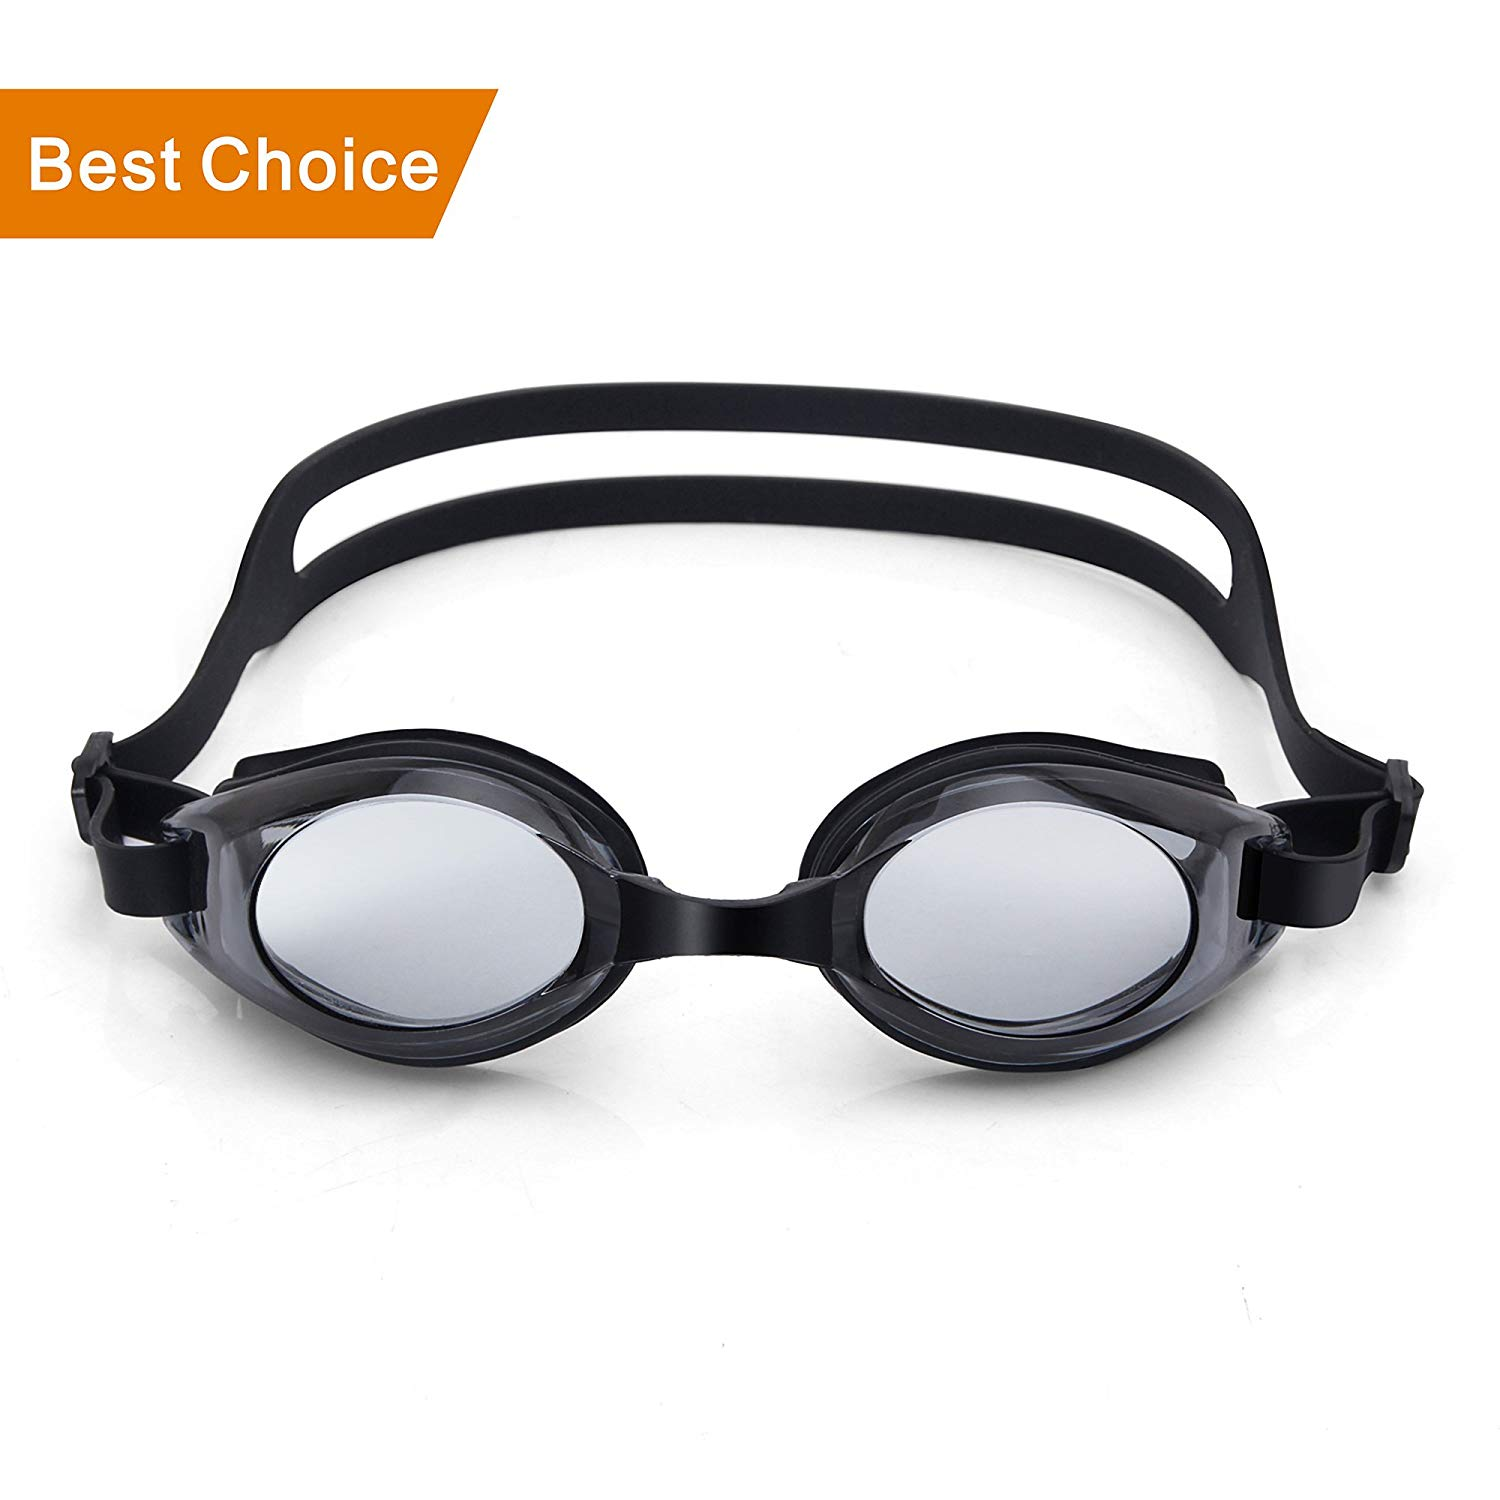 b29edab3d7d0 Get Quotations · Lenakrui Swim Goggles Youth Competition Swimming Goggles  for Men Women kids Boys Girls Toddlers Anti-